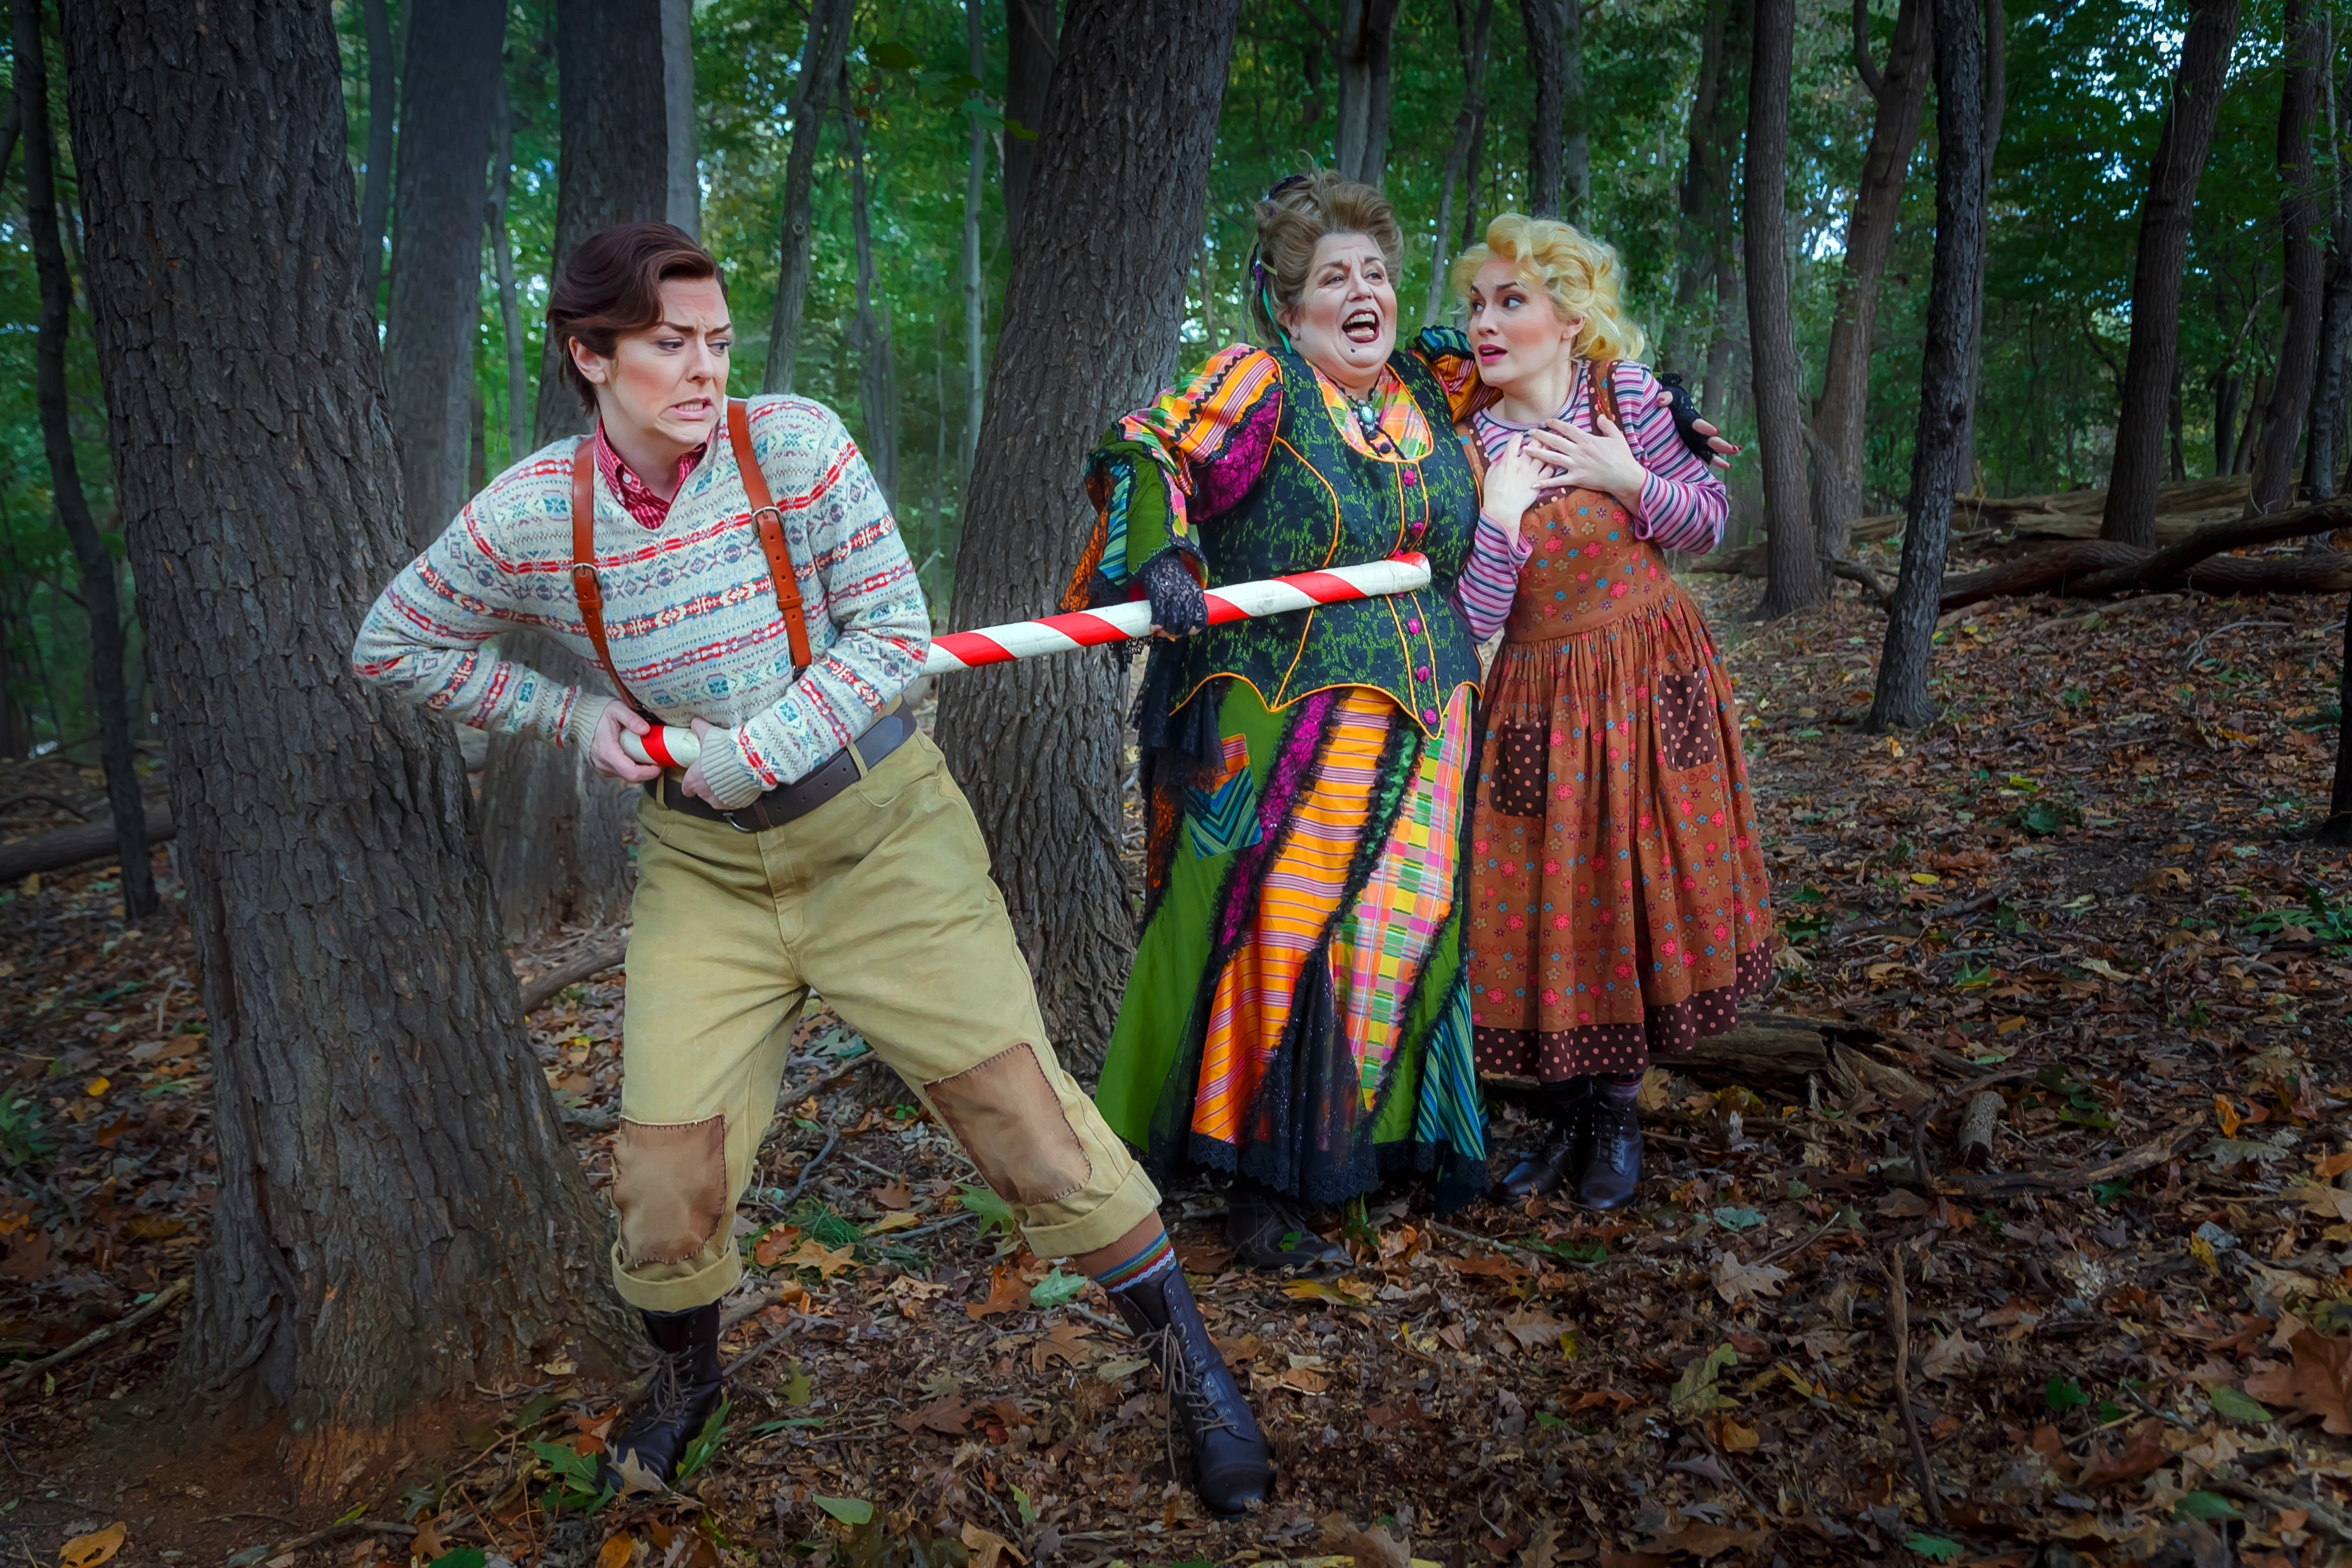 Hansel is hooked while the witch has a handle on Gretel in Humperdinck's 'Hansel and Gretel.' Singing the roles for Pittsburgh Opera are (L to R) mezzo Corrie Stallings, mezzo Marianne Cornetti, and soprano Ashley Fabian. (photo: David Bachman Photography)